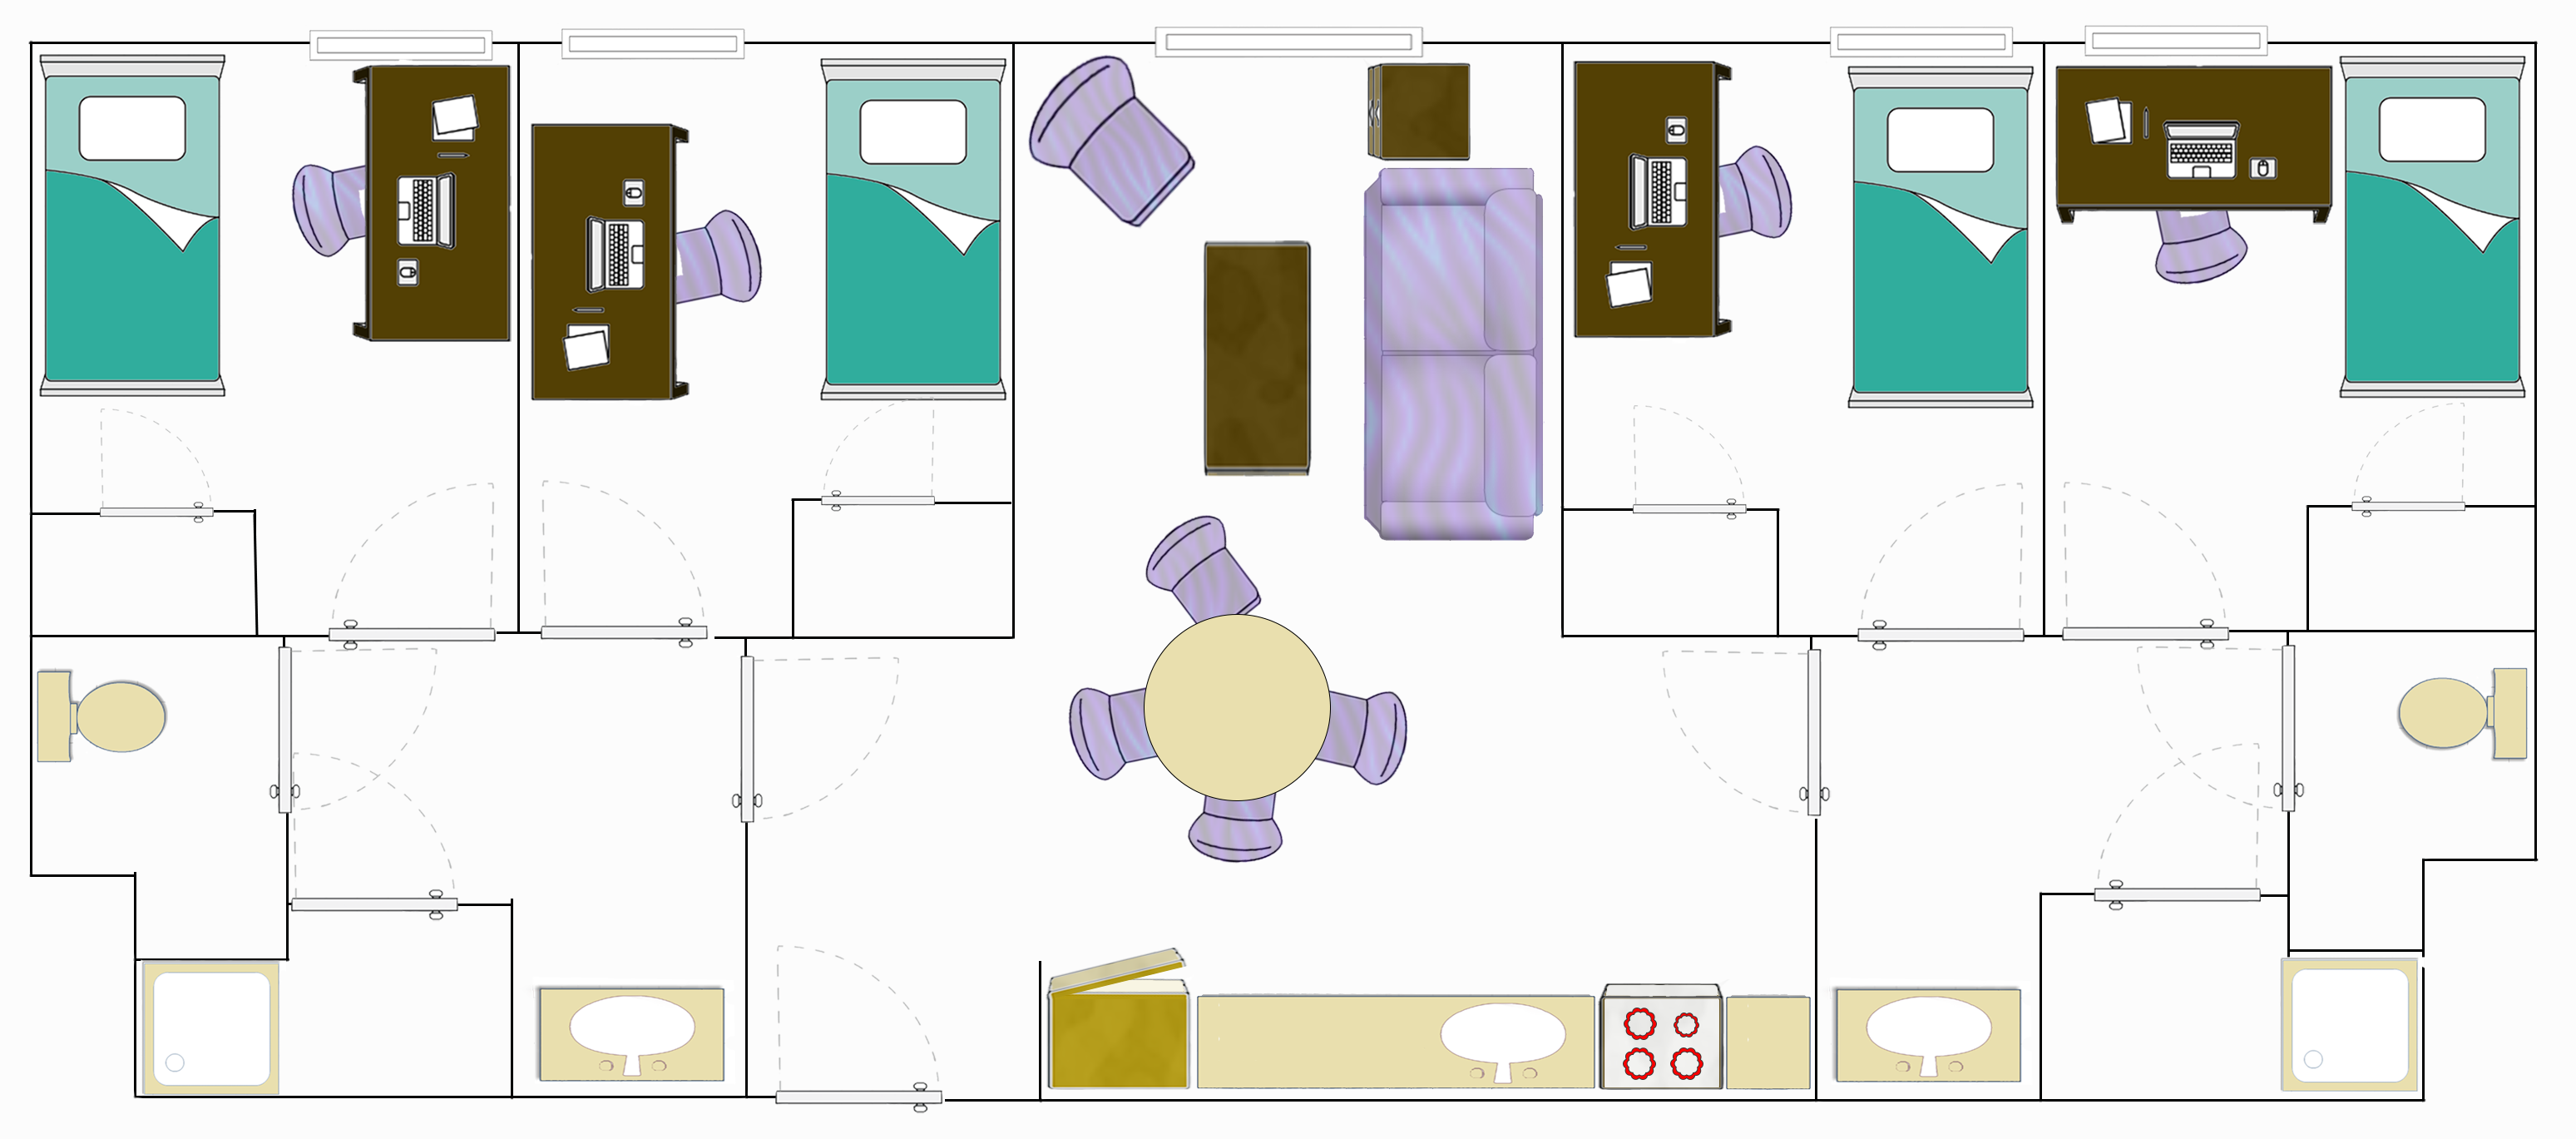 Floorplan for a Four Bedroom Apartment